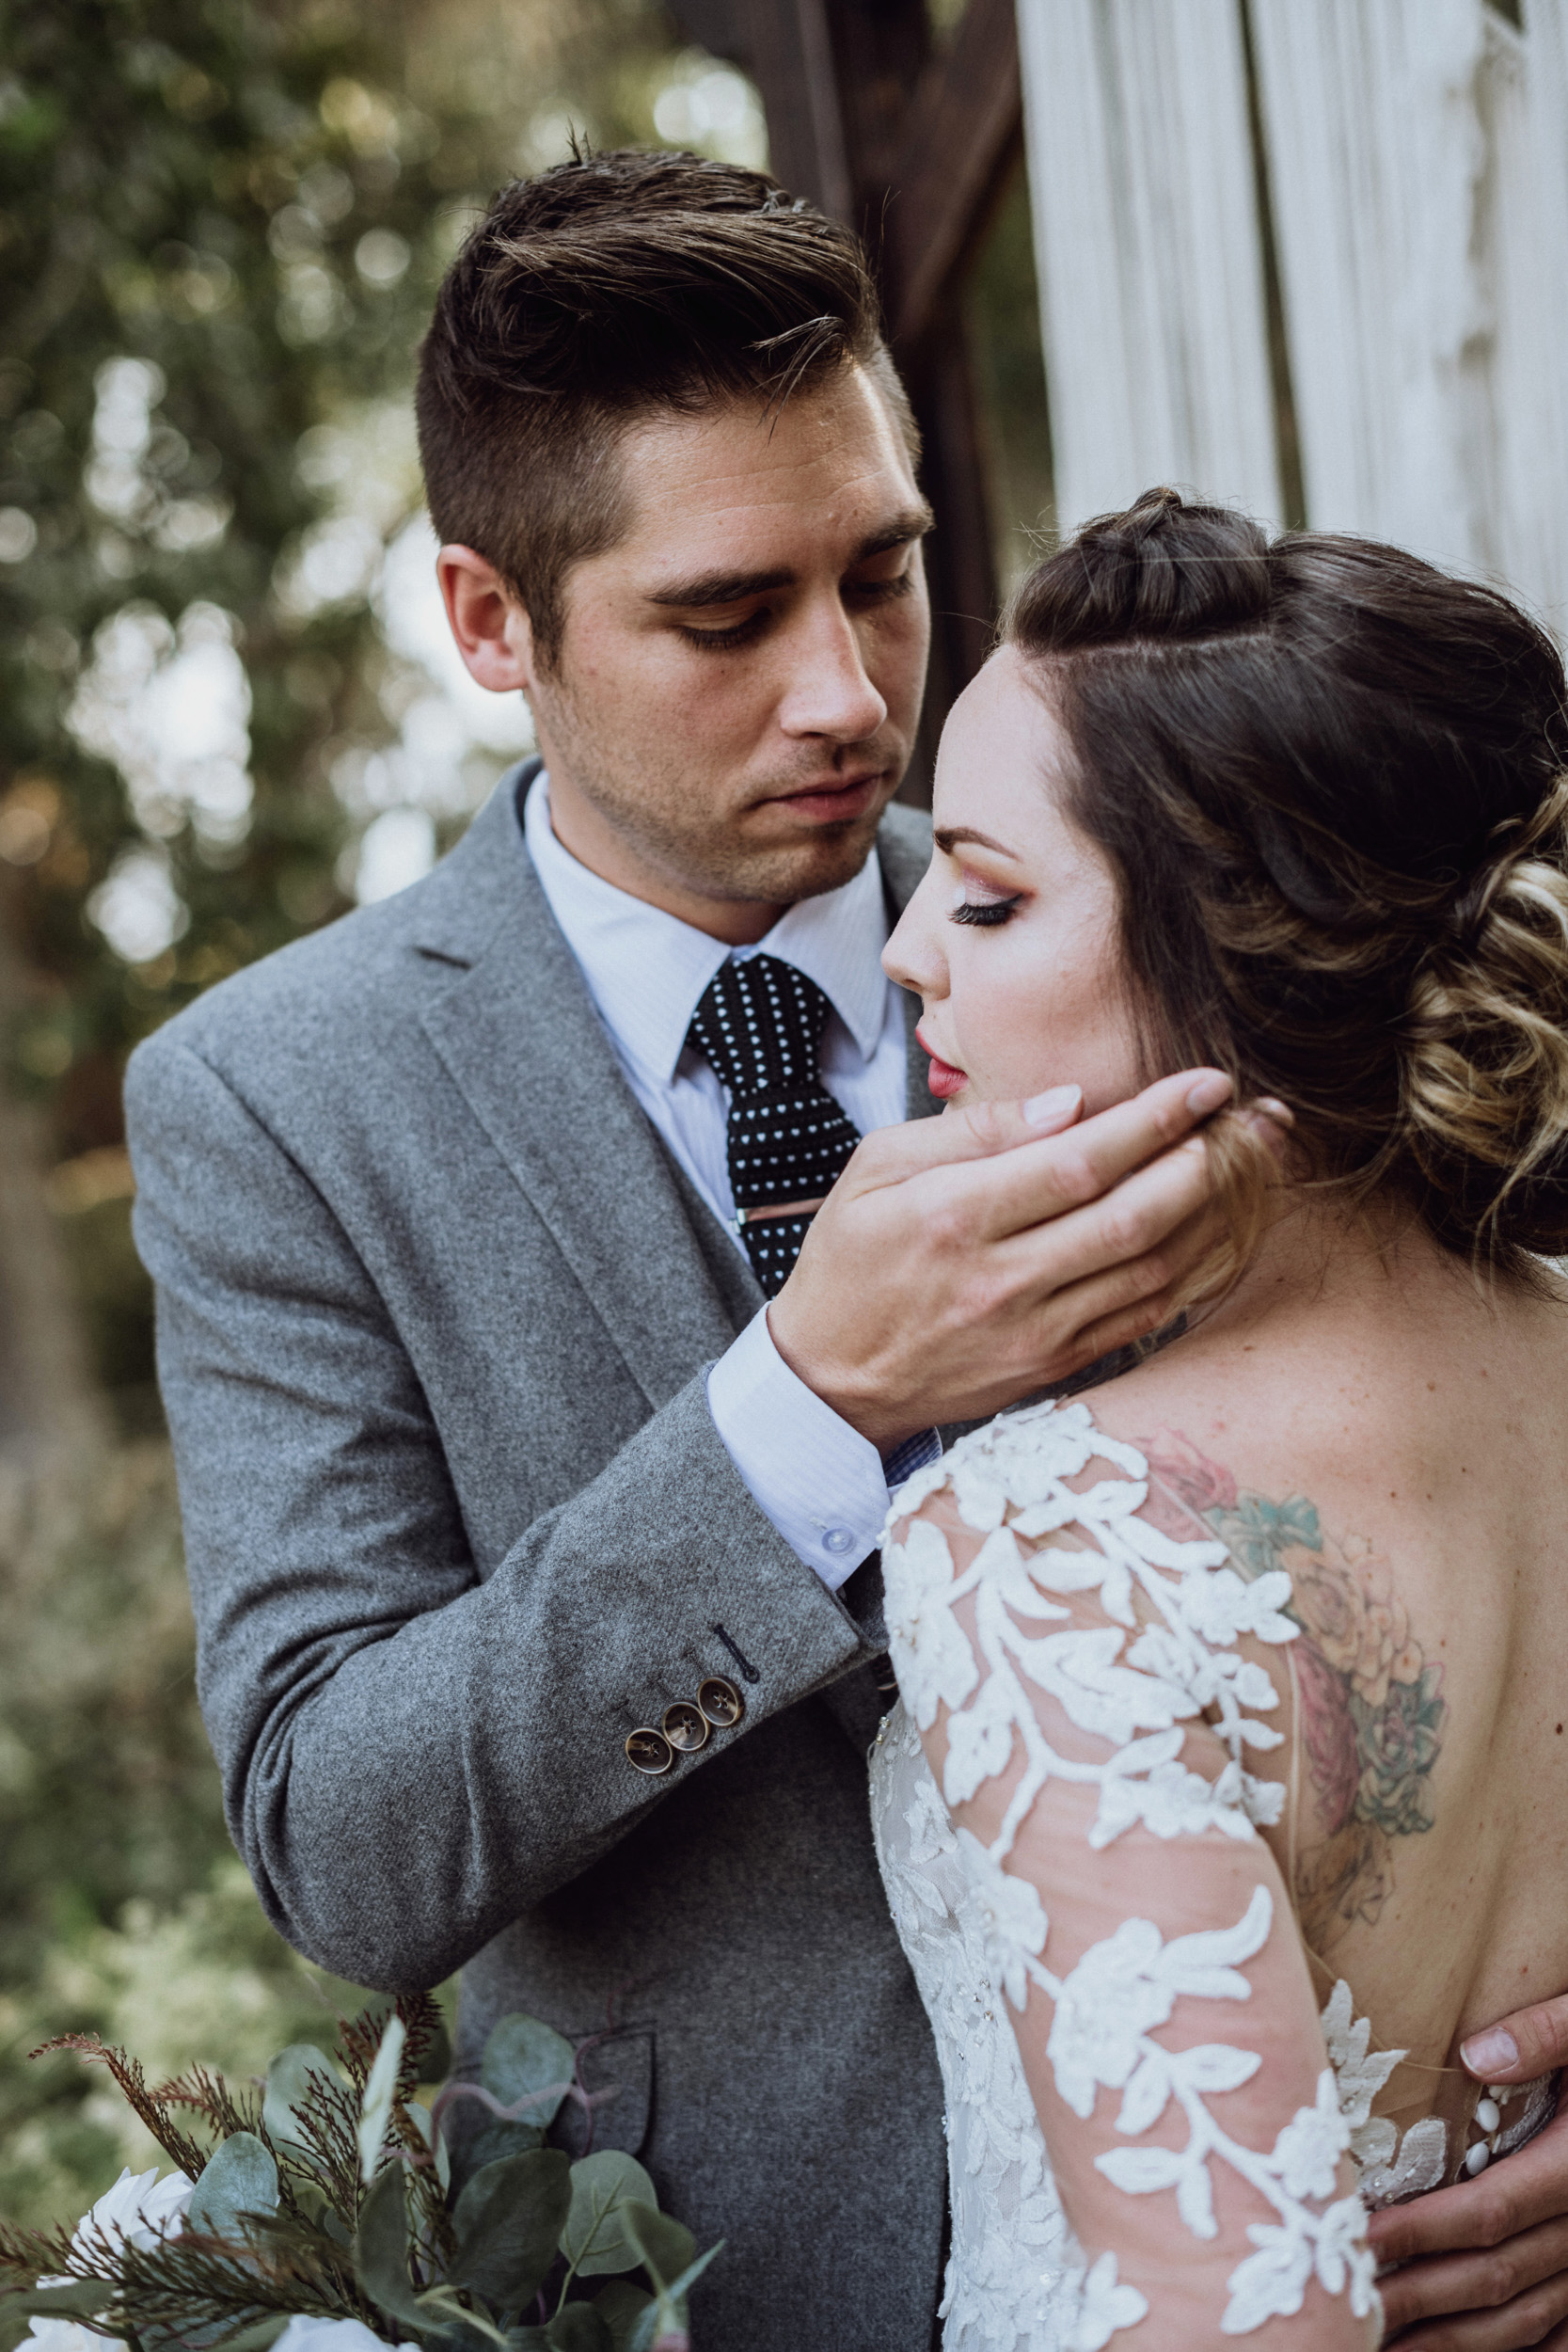 Groom touching brides face in front macrame